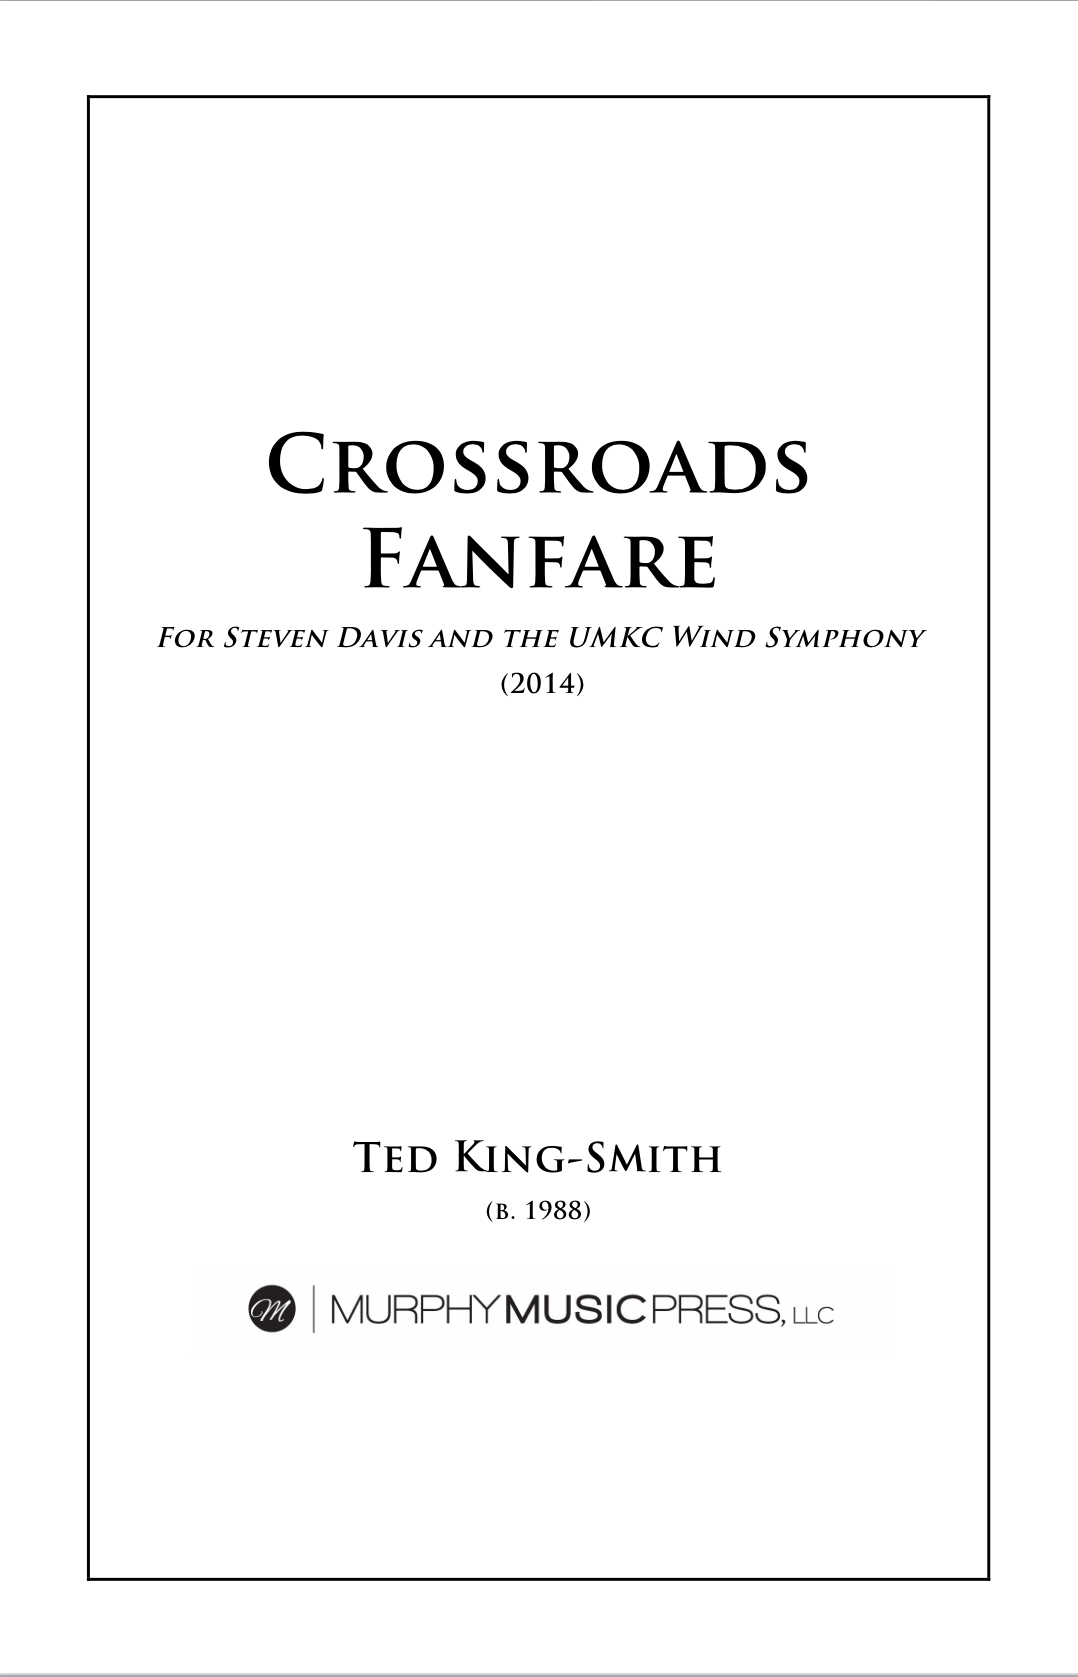 Crossroads Fanare by Ted King-Smith